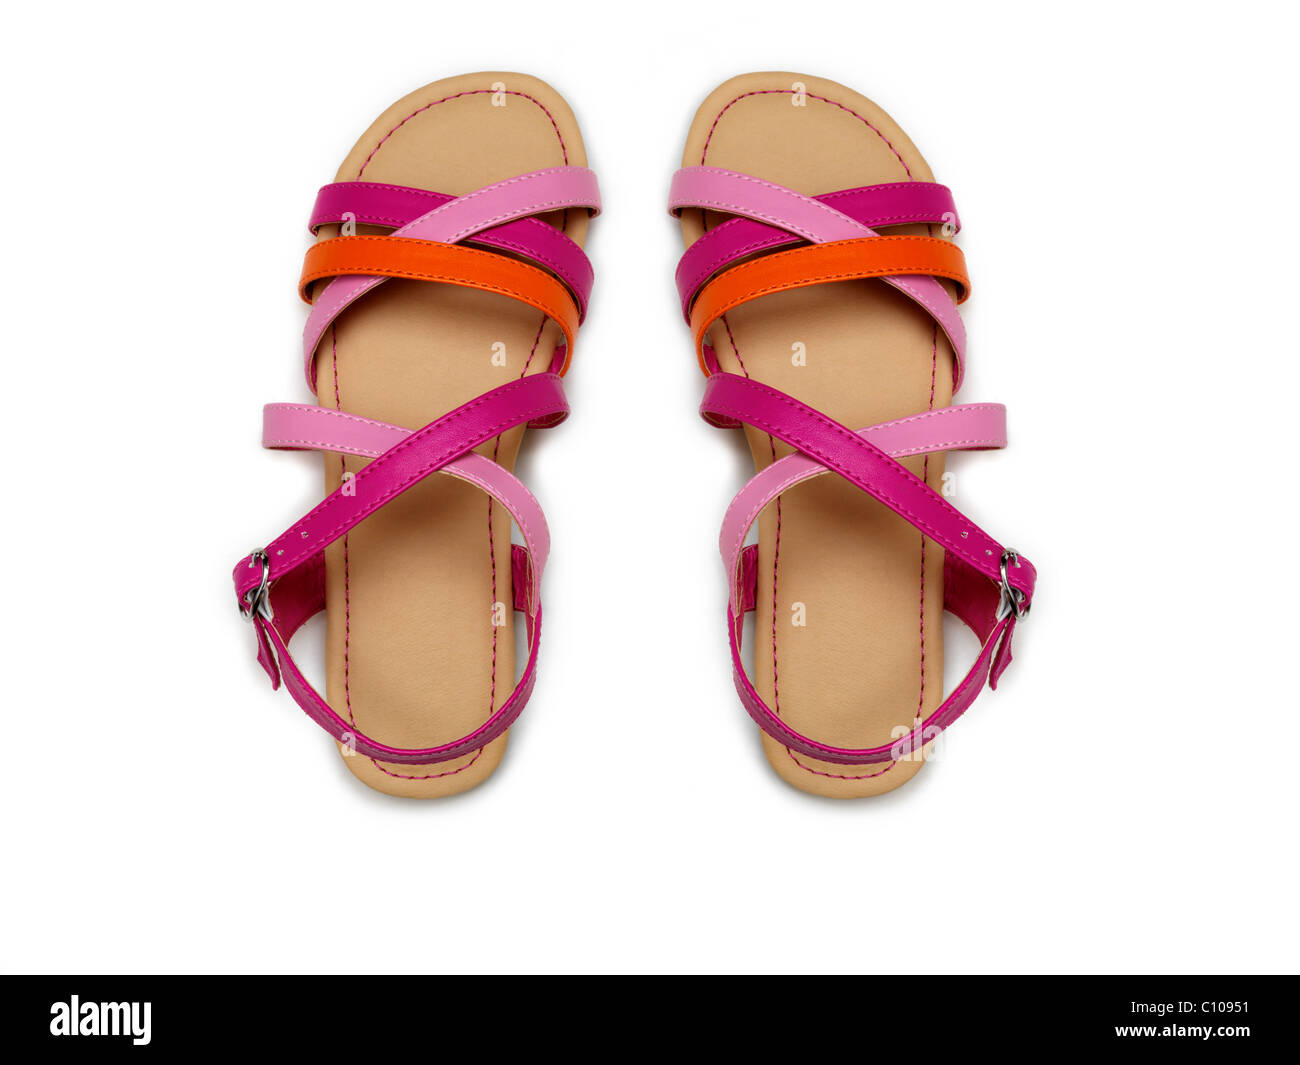 A Pair Of Children's Red And Pink Sandals - Stock Image